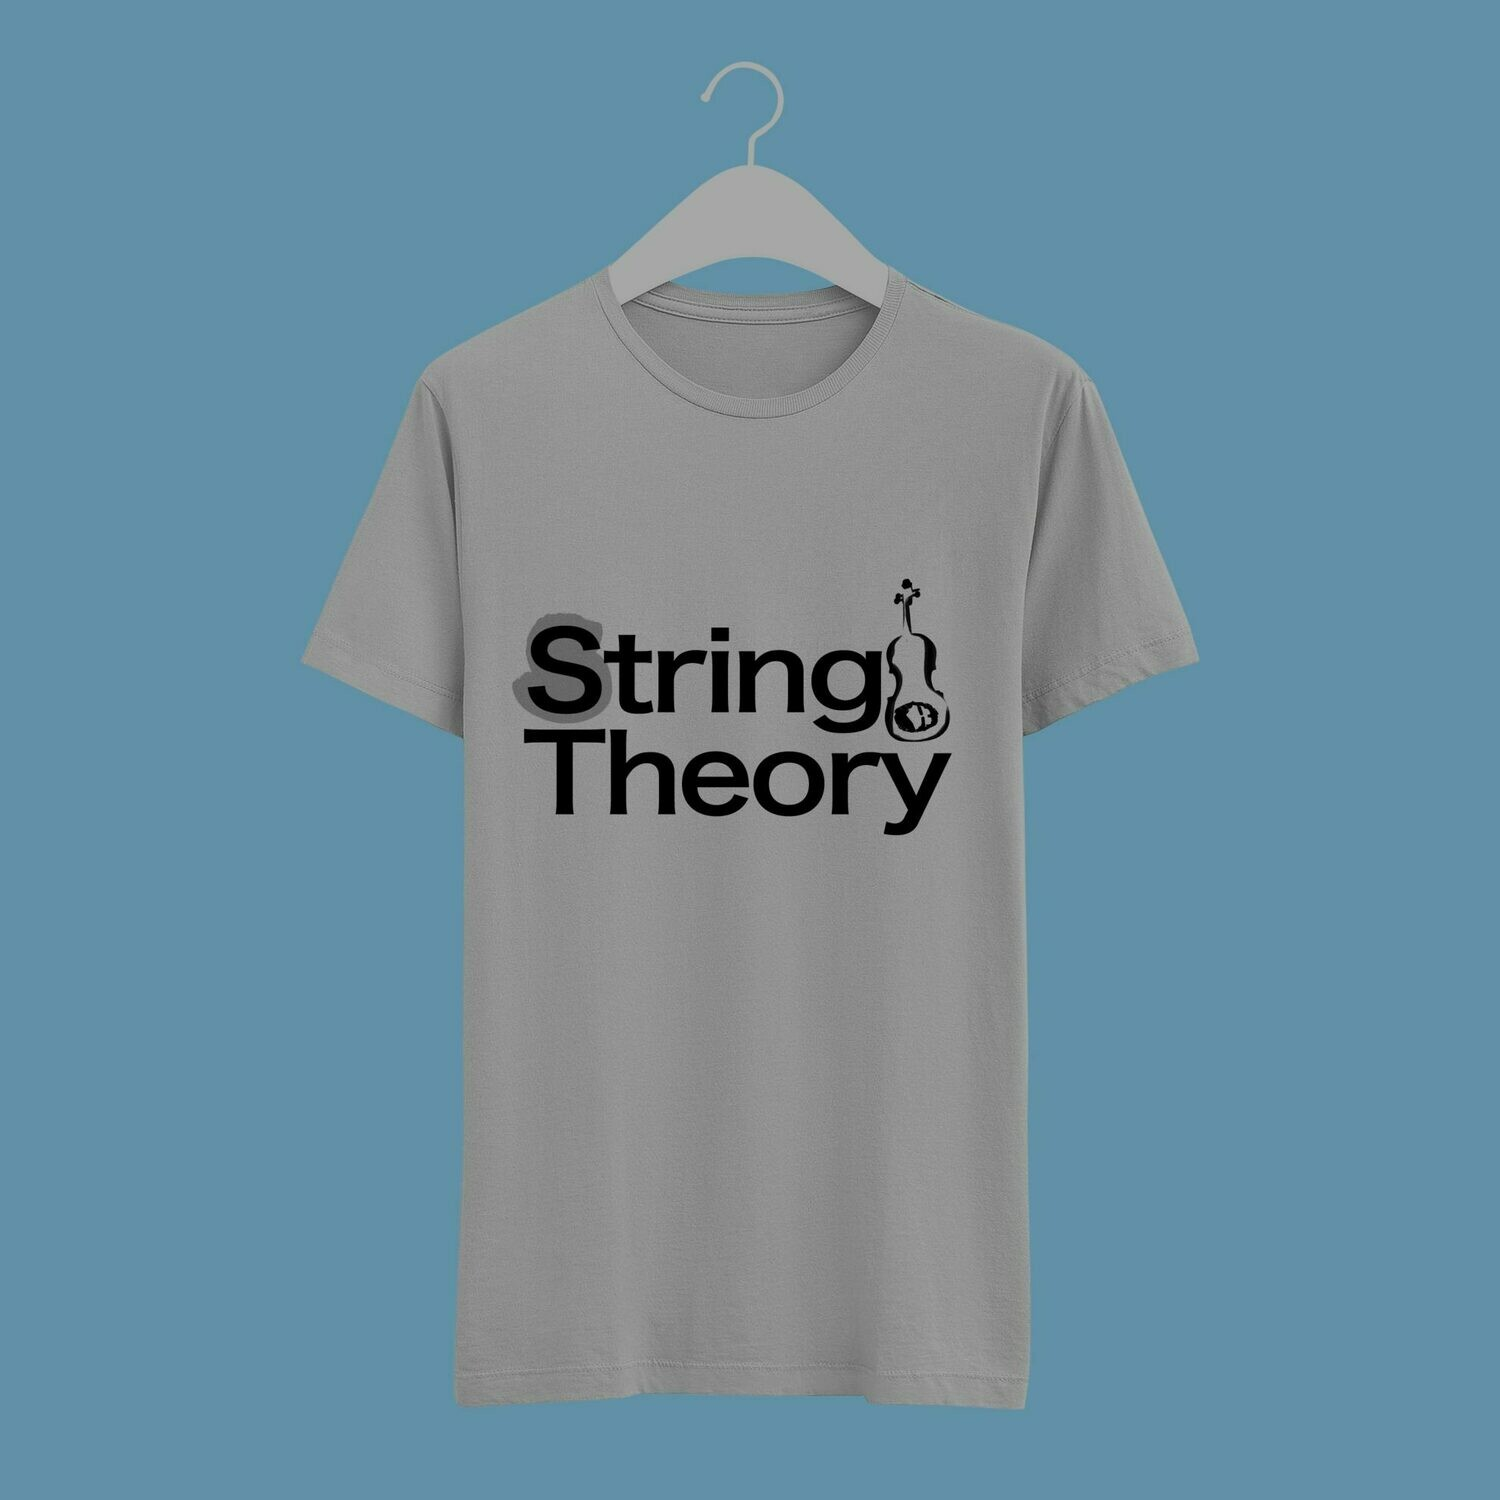 String Theory T-Shirt